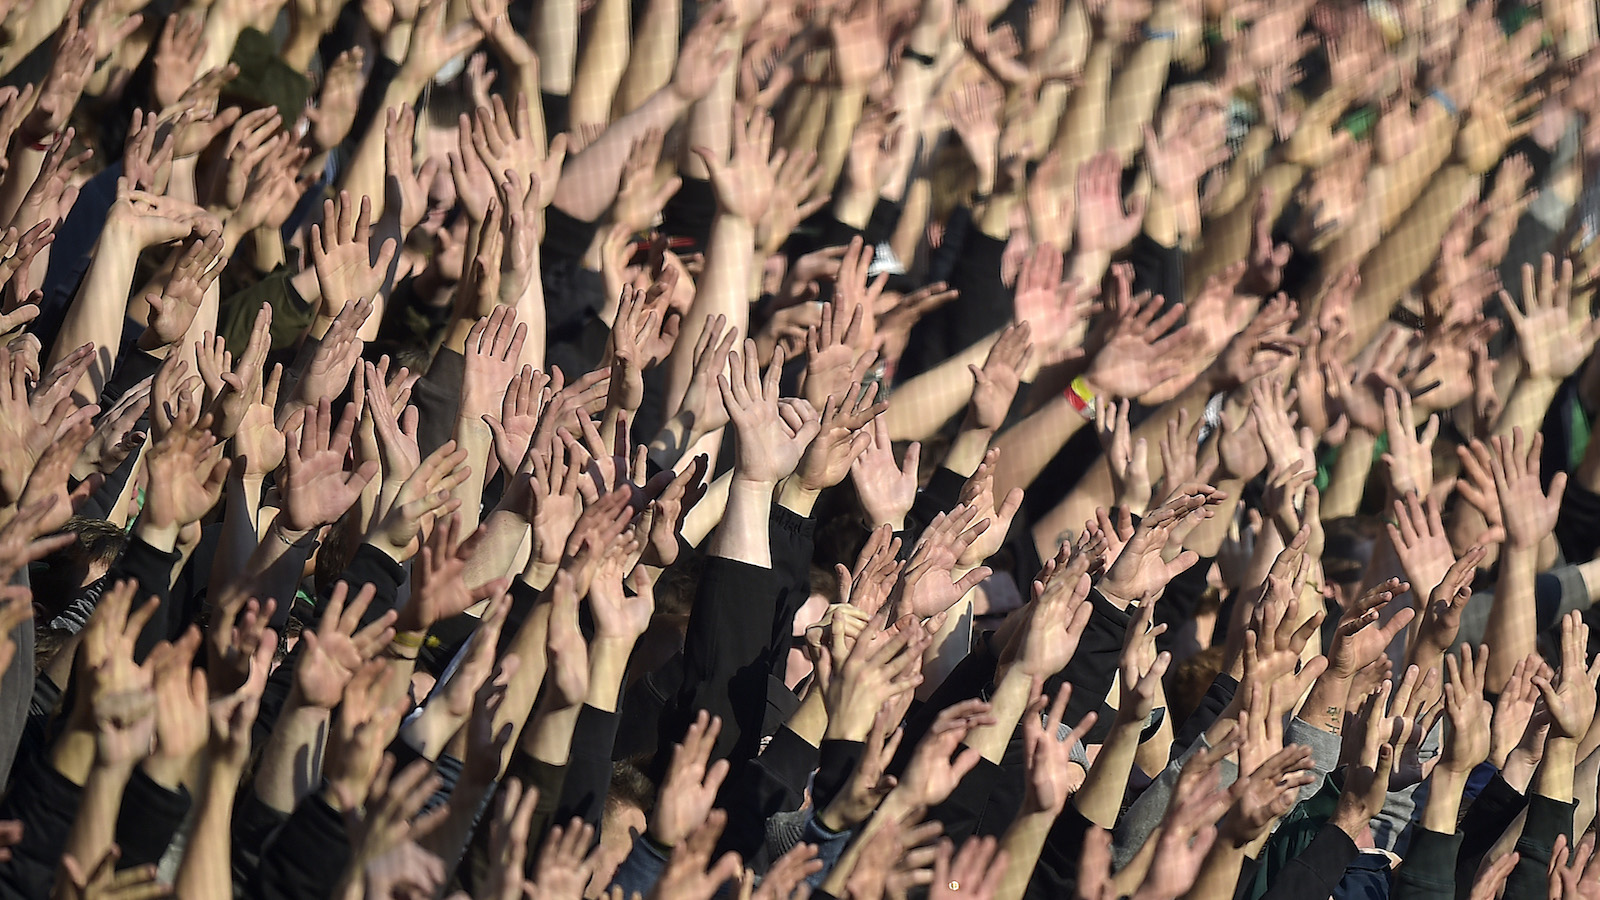 Borussia's supporters holding their hands up during the German Bundesliga soccer match between Borussia Moenchengladbach and 1. FC Cologne in Moenchengladbach, Germany, Saturday, Feb. 14, 2015. (AP Photo/Martin Meissner)